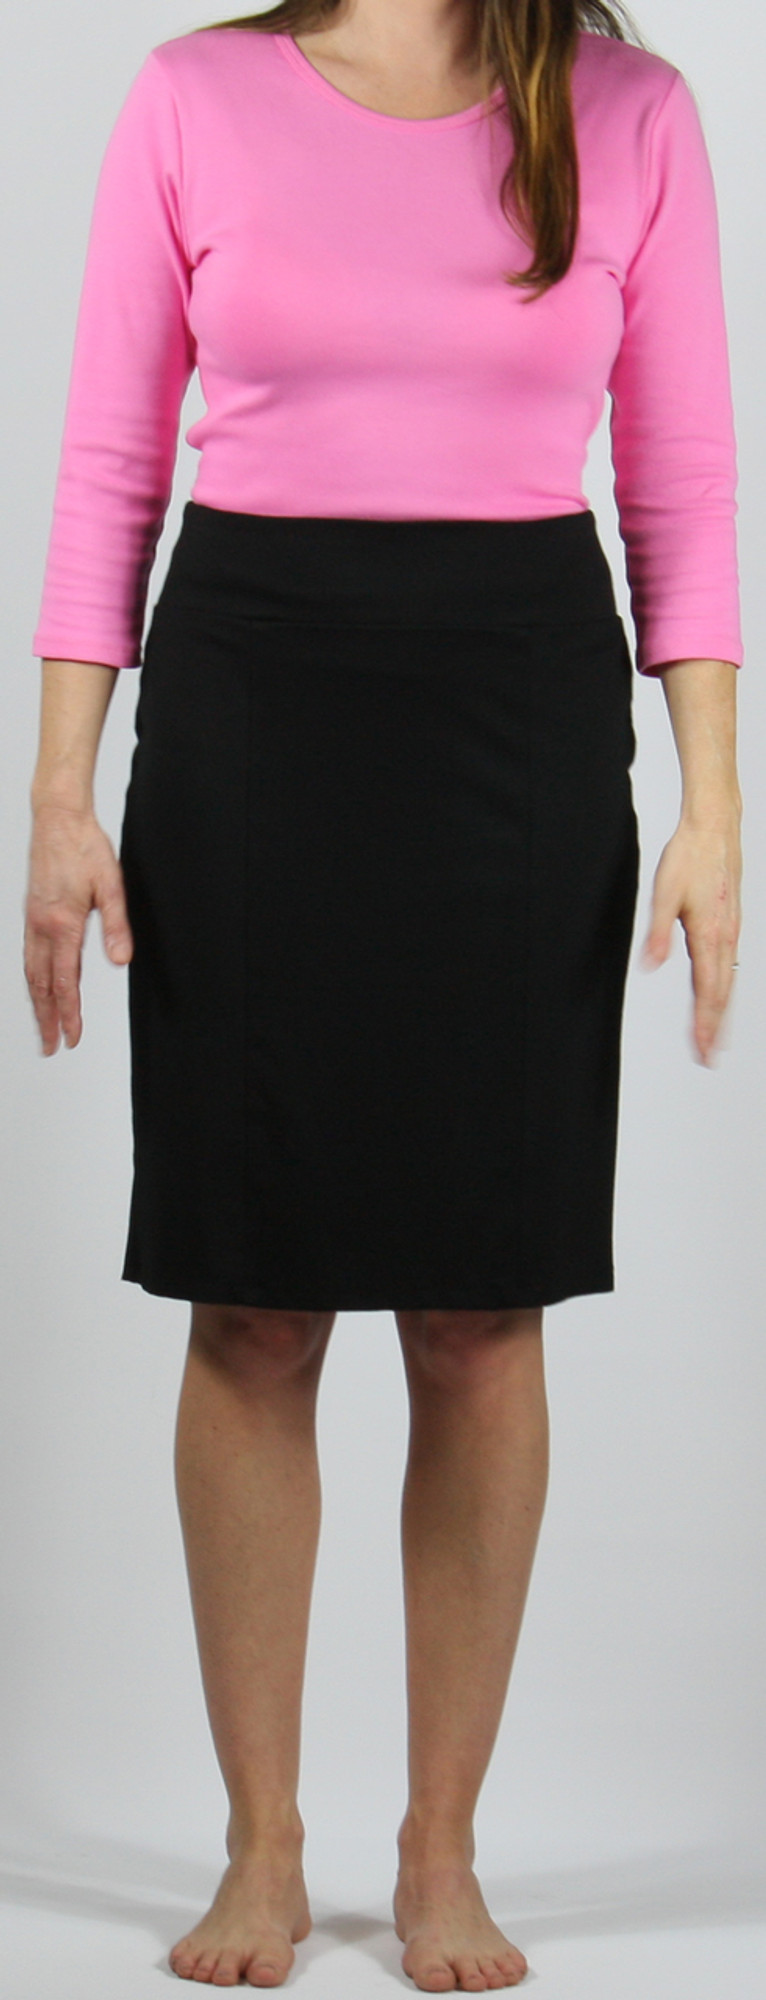 """Ponte knit straight 6-panel skirt, model is 5'8"""" and wearing size small."""